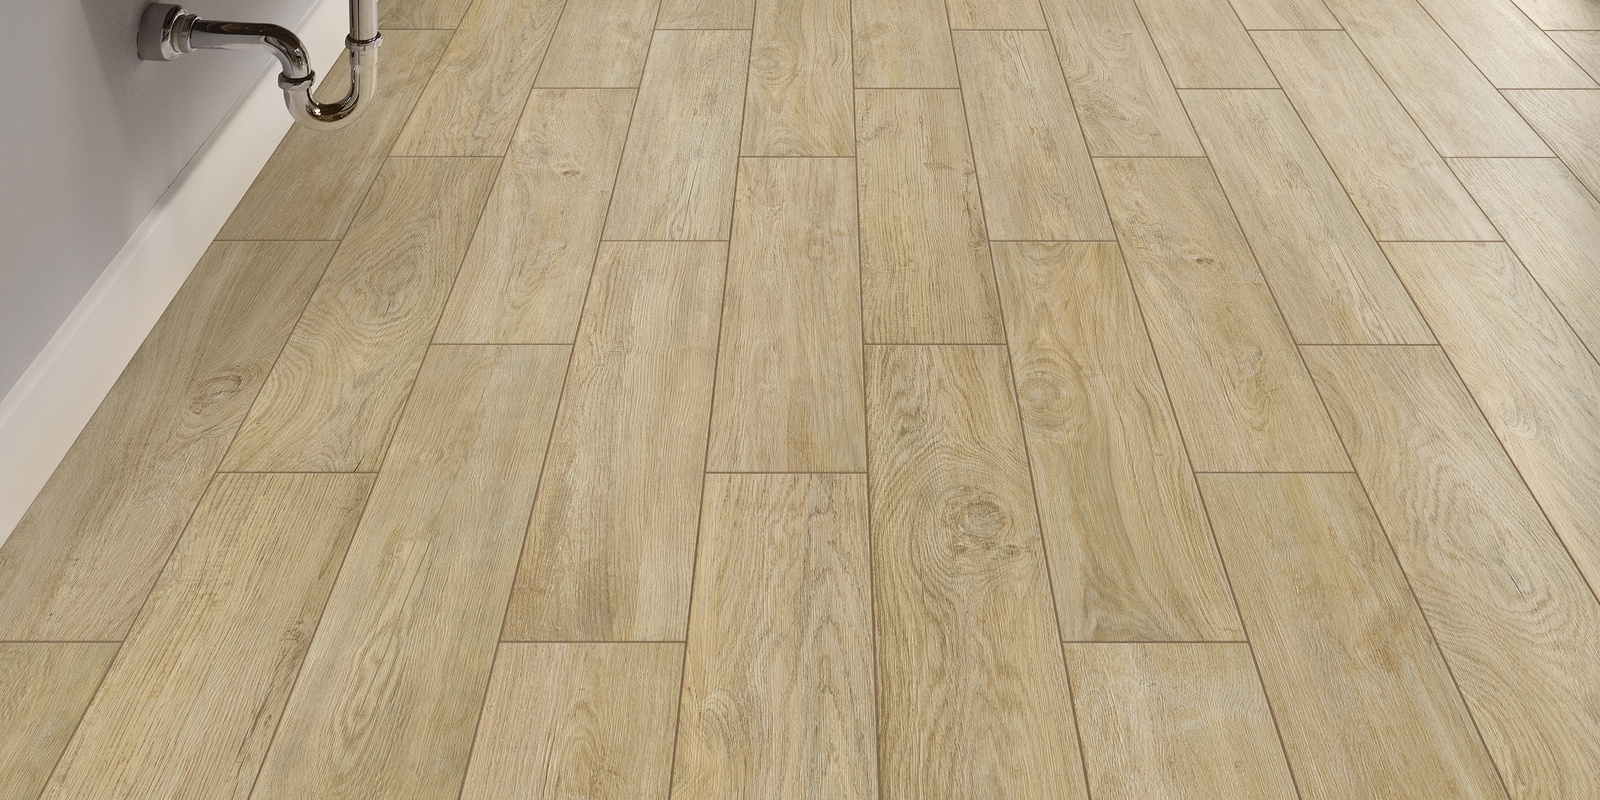 Magnolia Hdp A Wood Look Tile That Provides Year Round